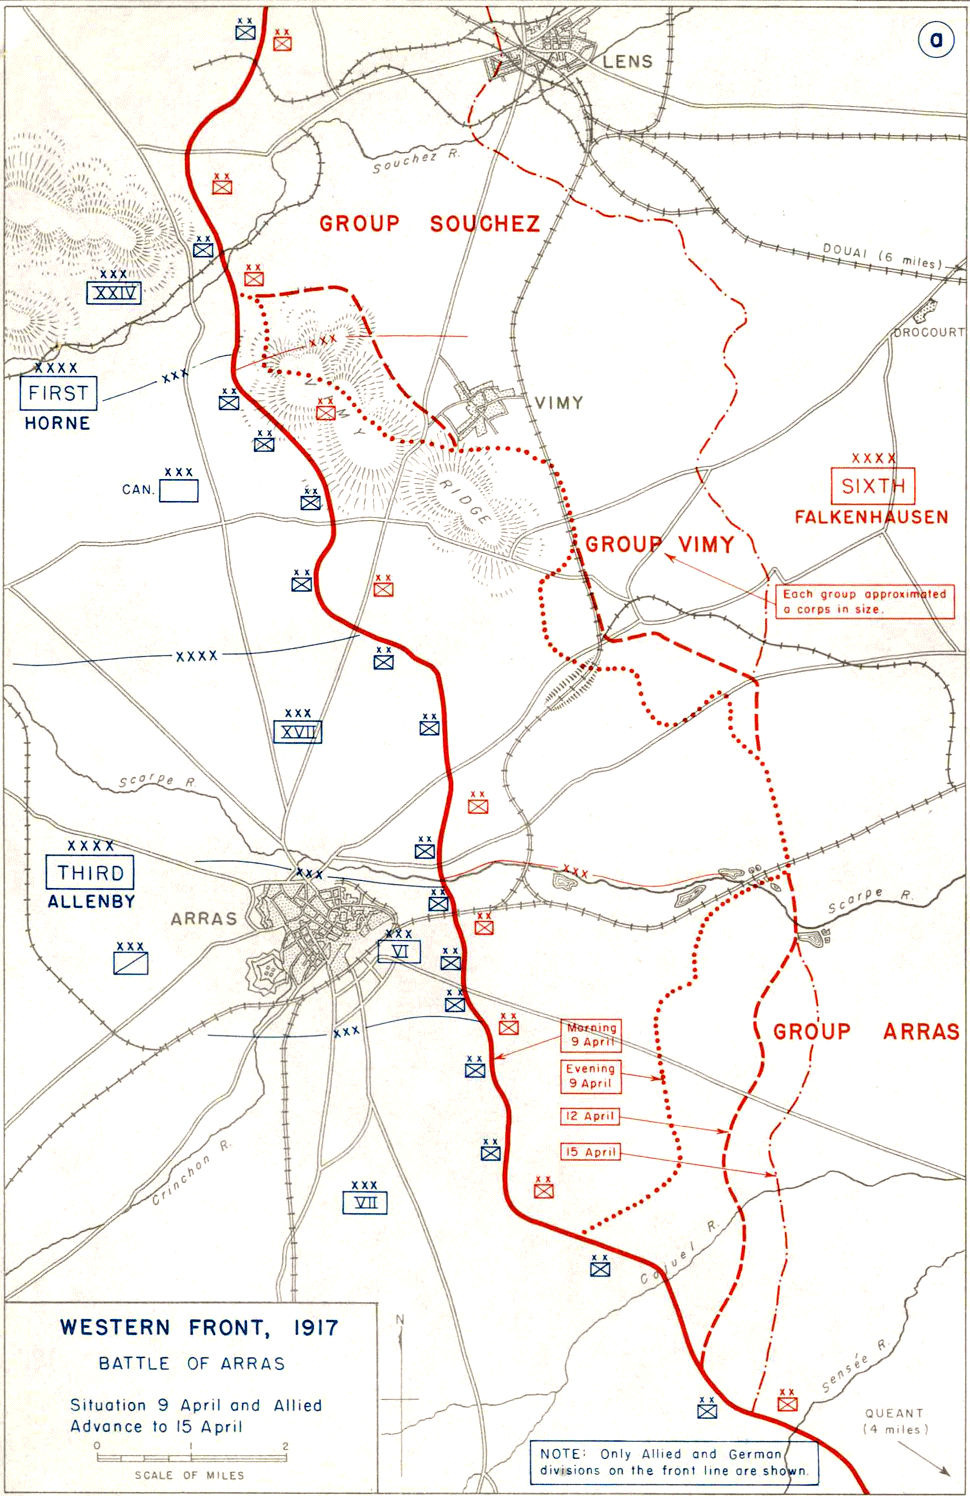 Usma battle of arras 1917